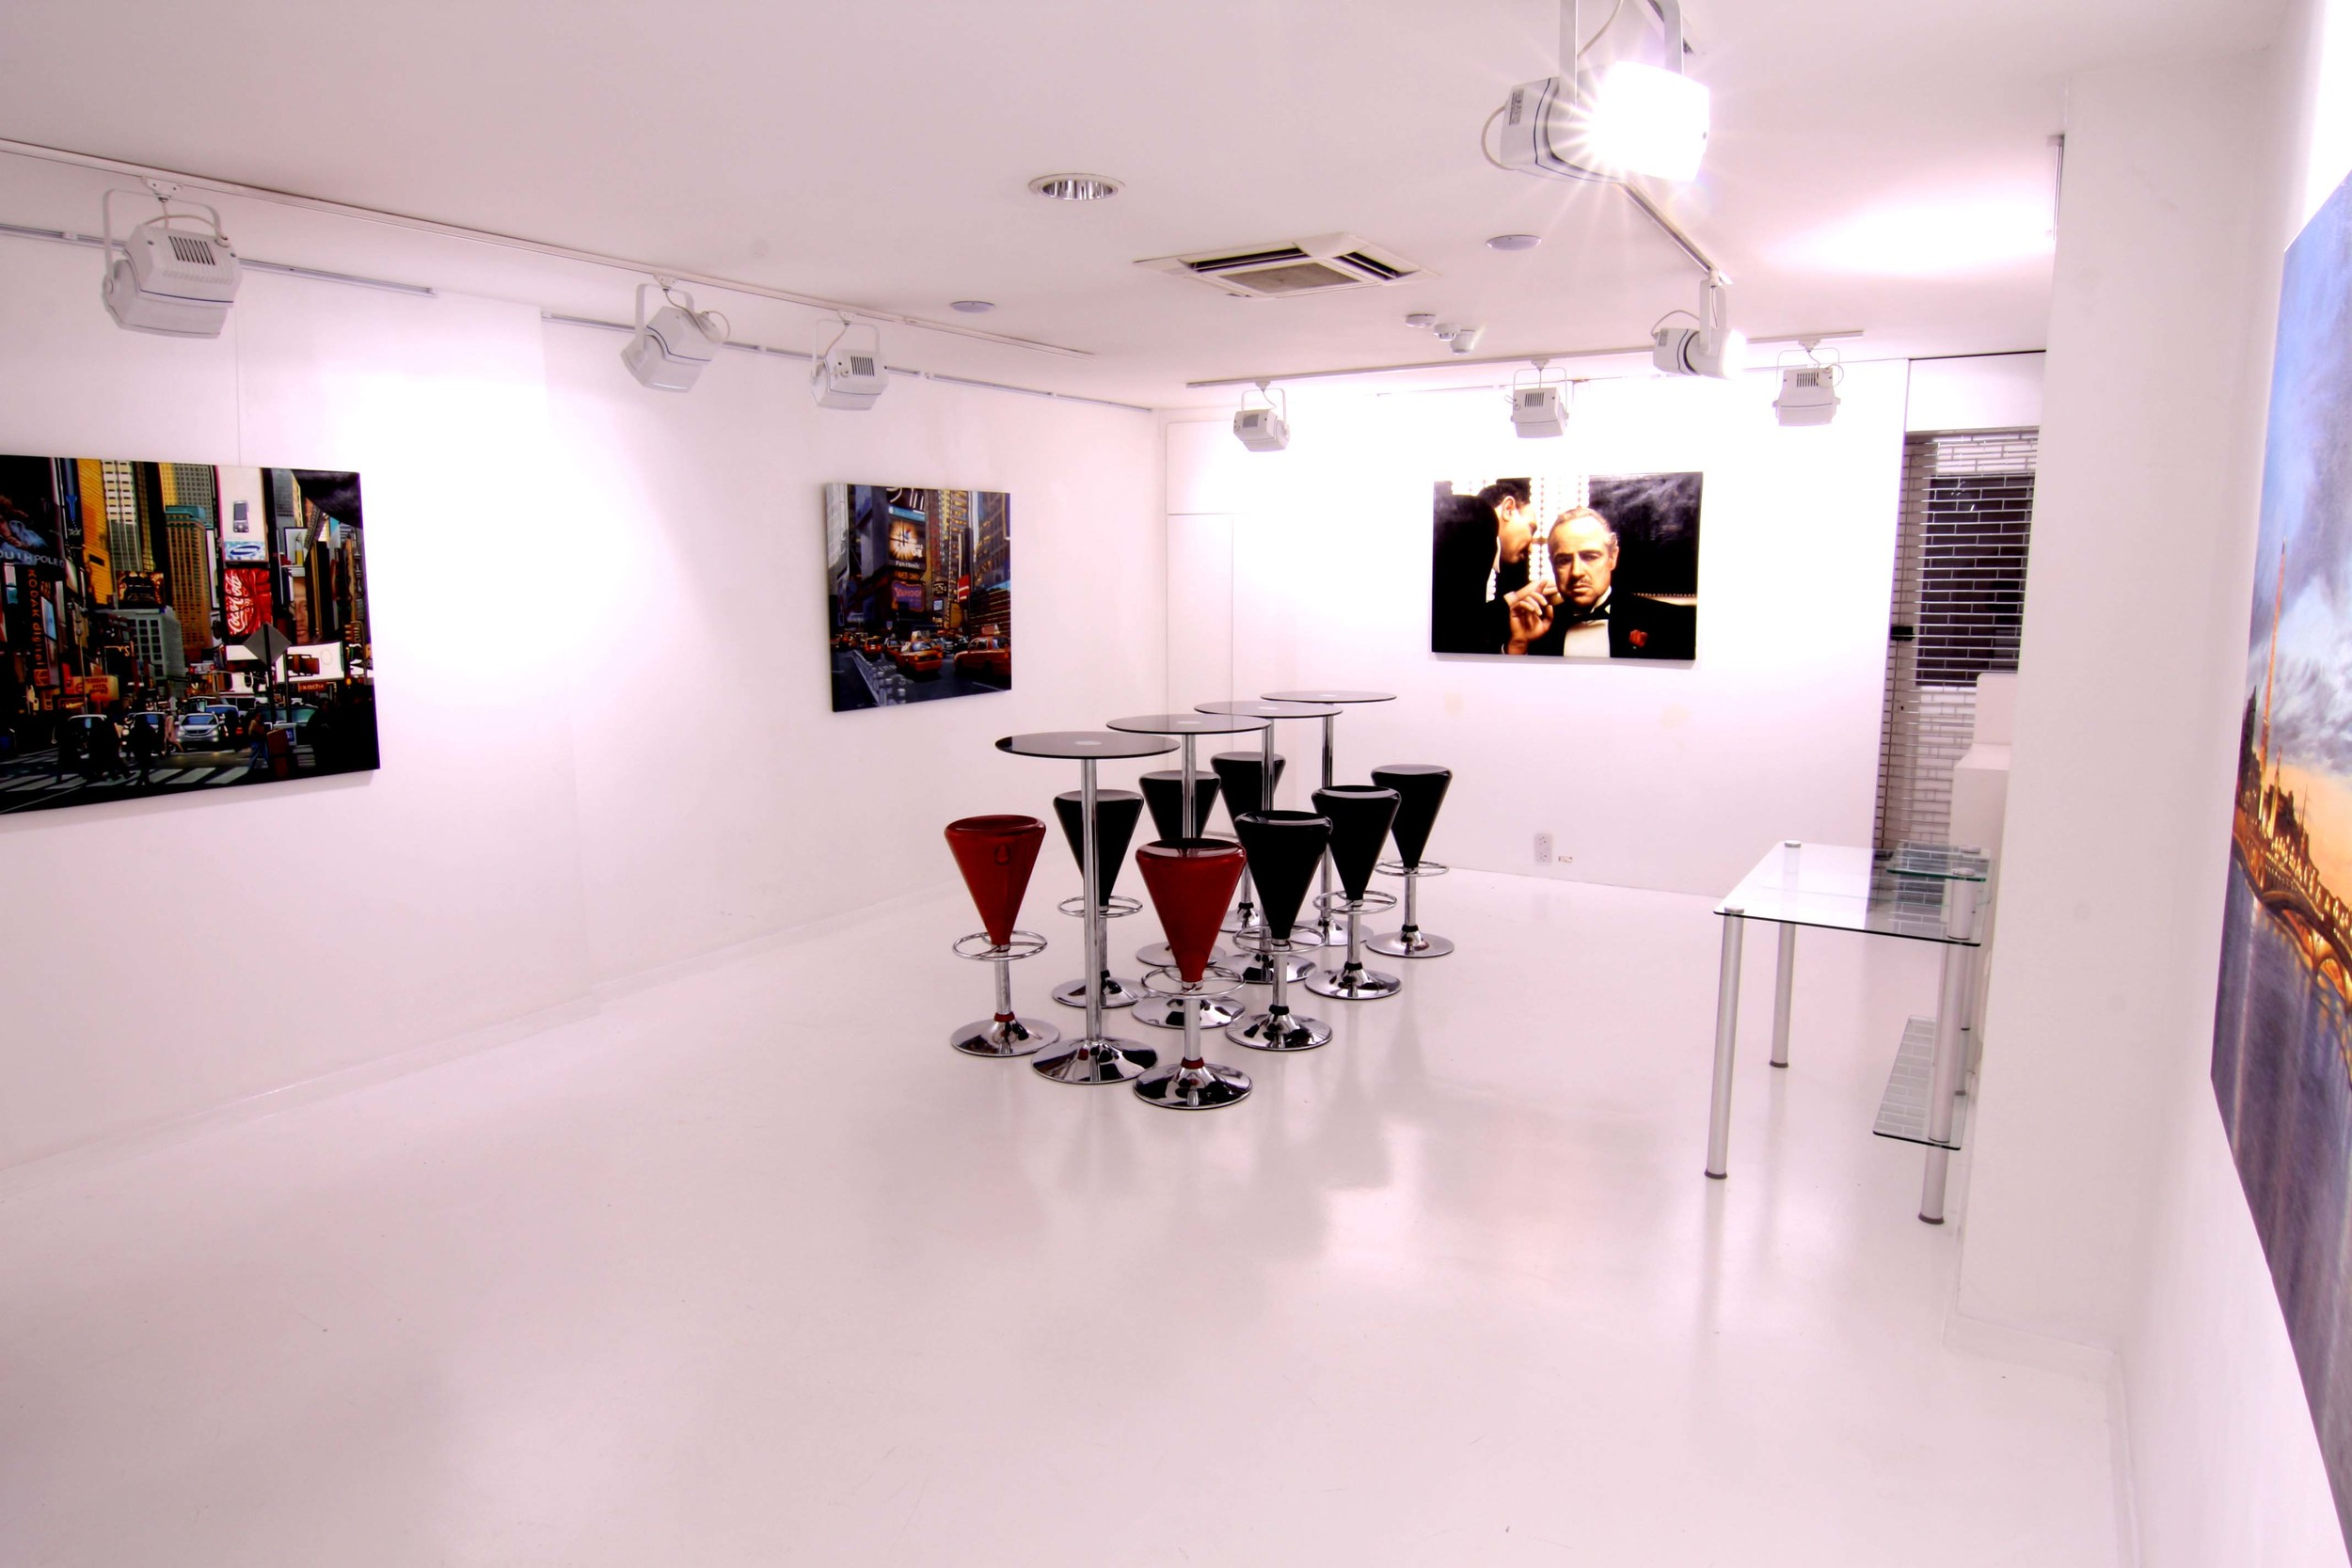 gallery pictures london 007.jpg